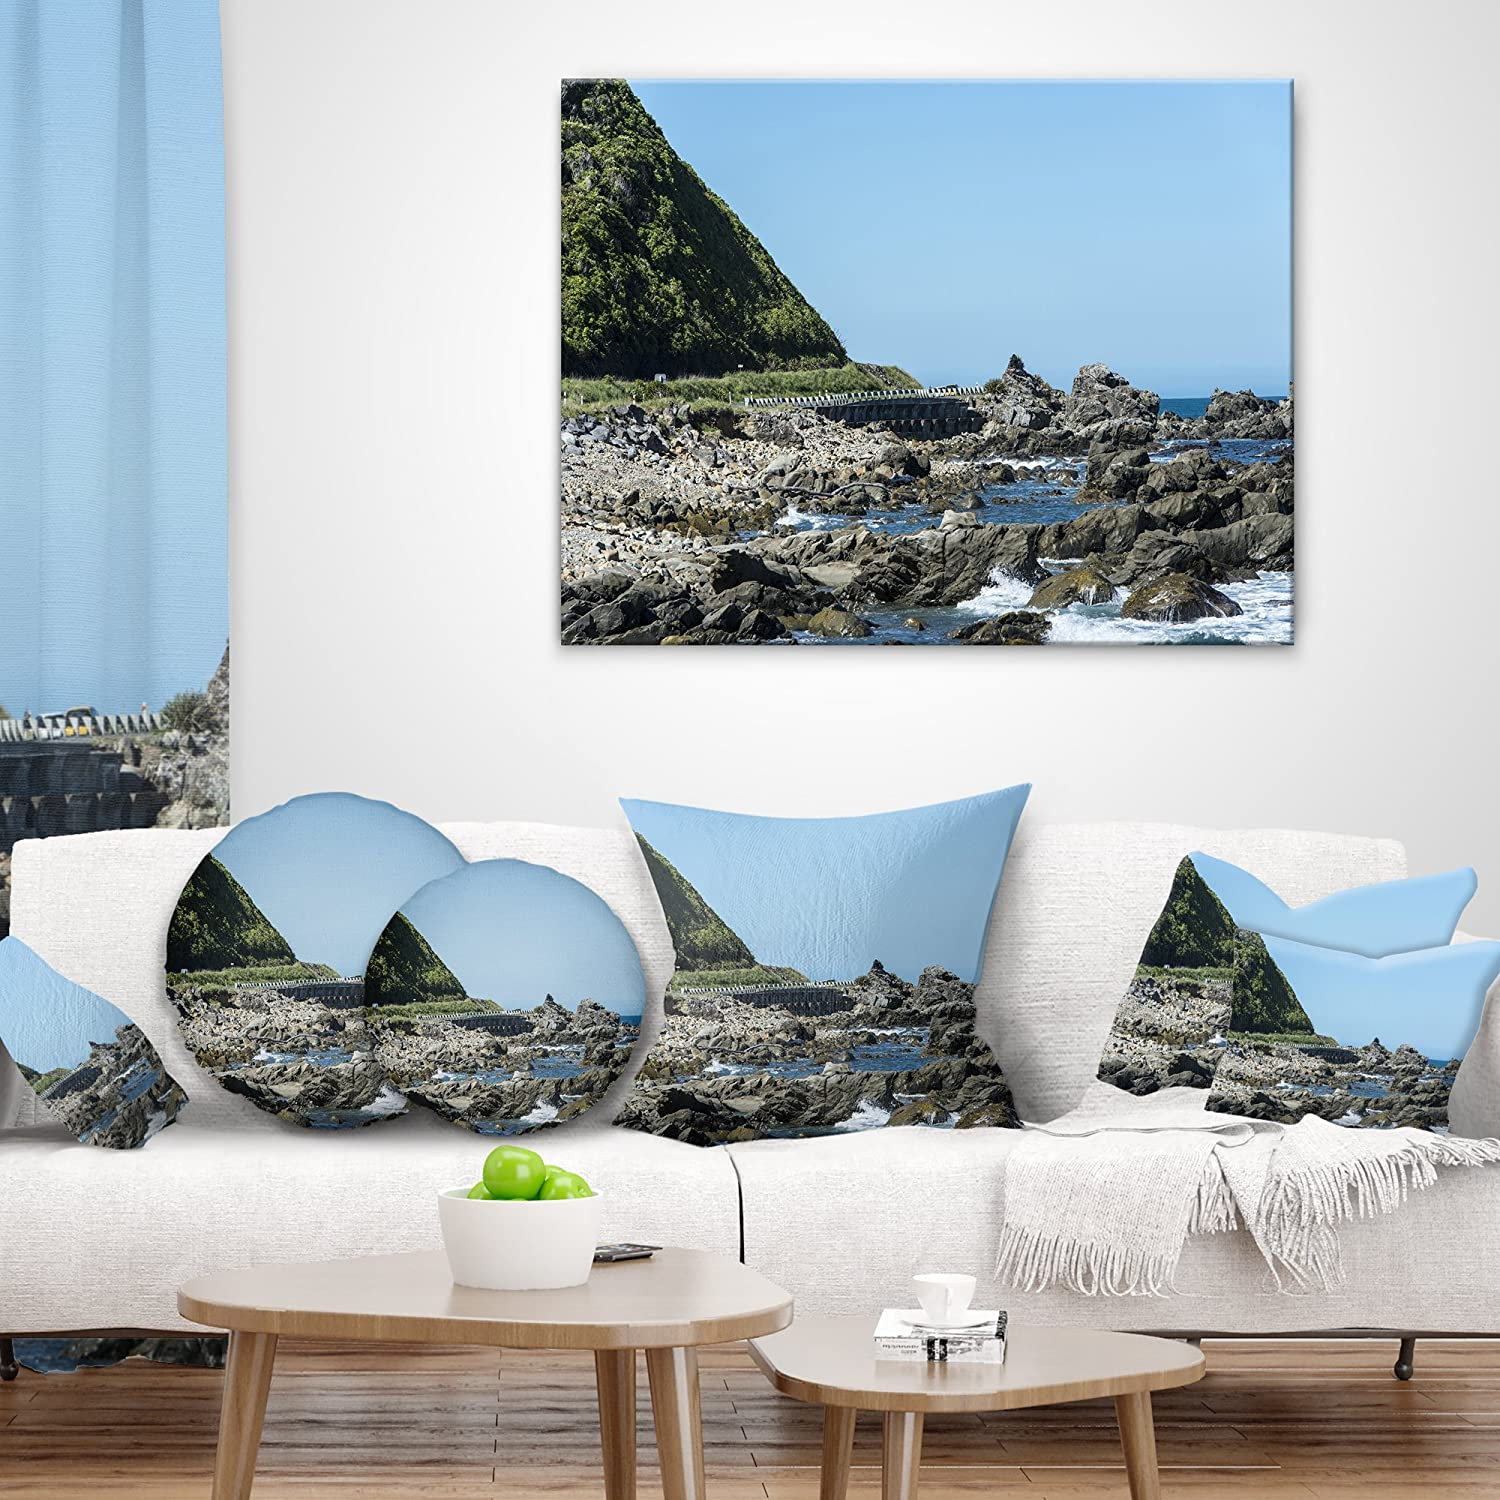 in Designart CU11456-26-26 Beautiful New Zealand Rocky Beach Modern Seascape Cushion Cover for Living Room x 26 in Sofa Throw Pillow 26 in Insert Printed On Both Side